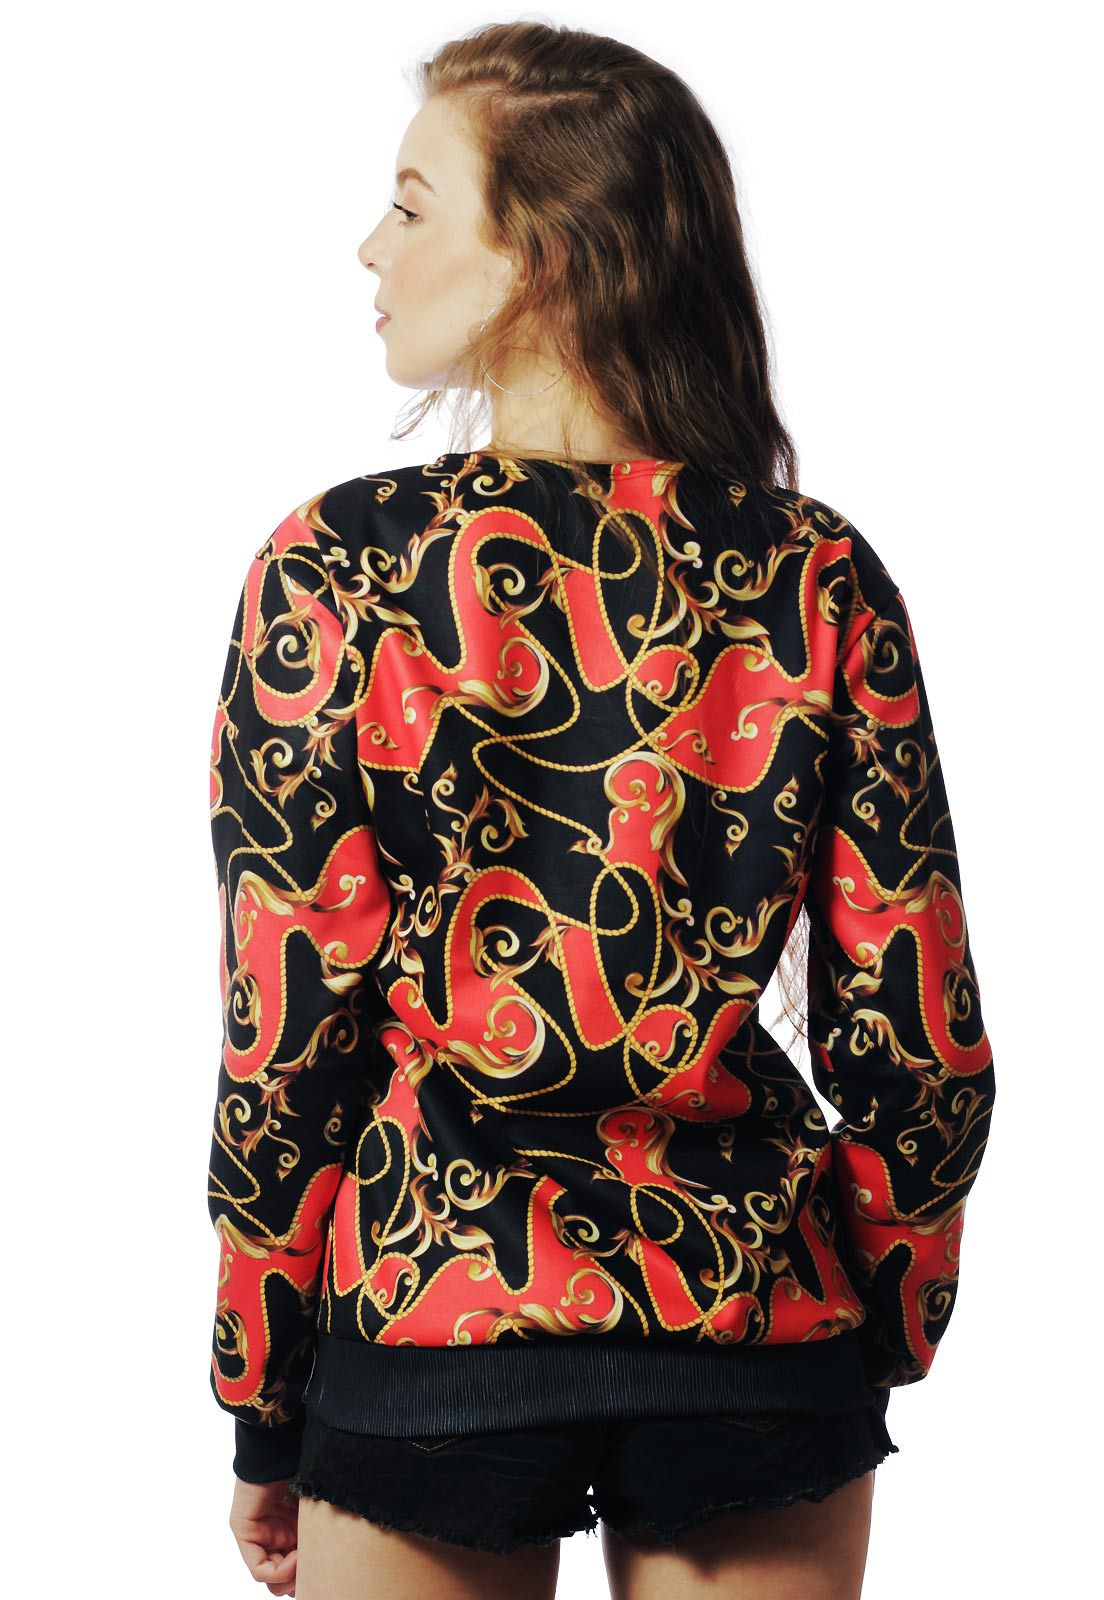 BLUSA MOLETOM BARROCO ESTAMPADO FULL PRINT UNISSEX RED